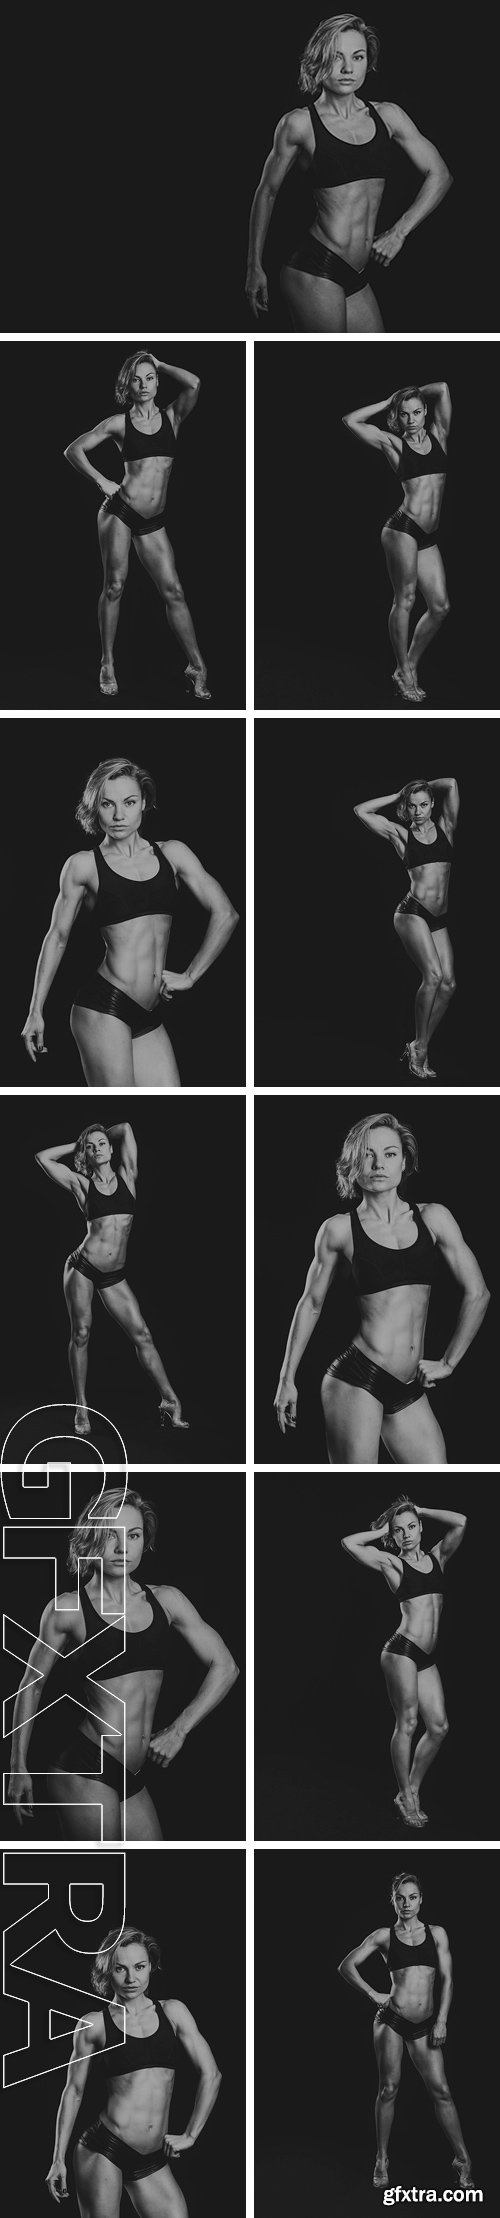 Stock Photos - Strong, sexy blonde with a perfect body. Female fitness bodybuilding